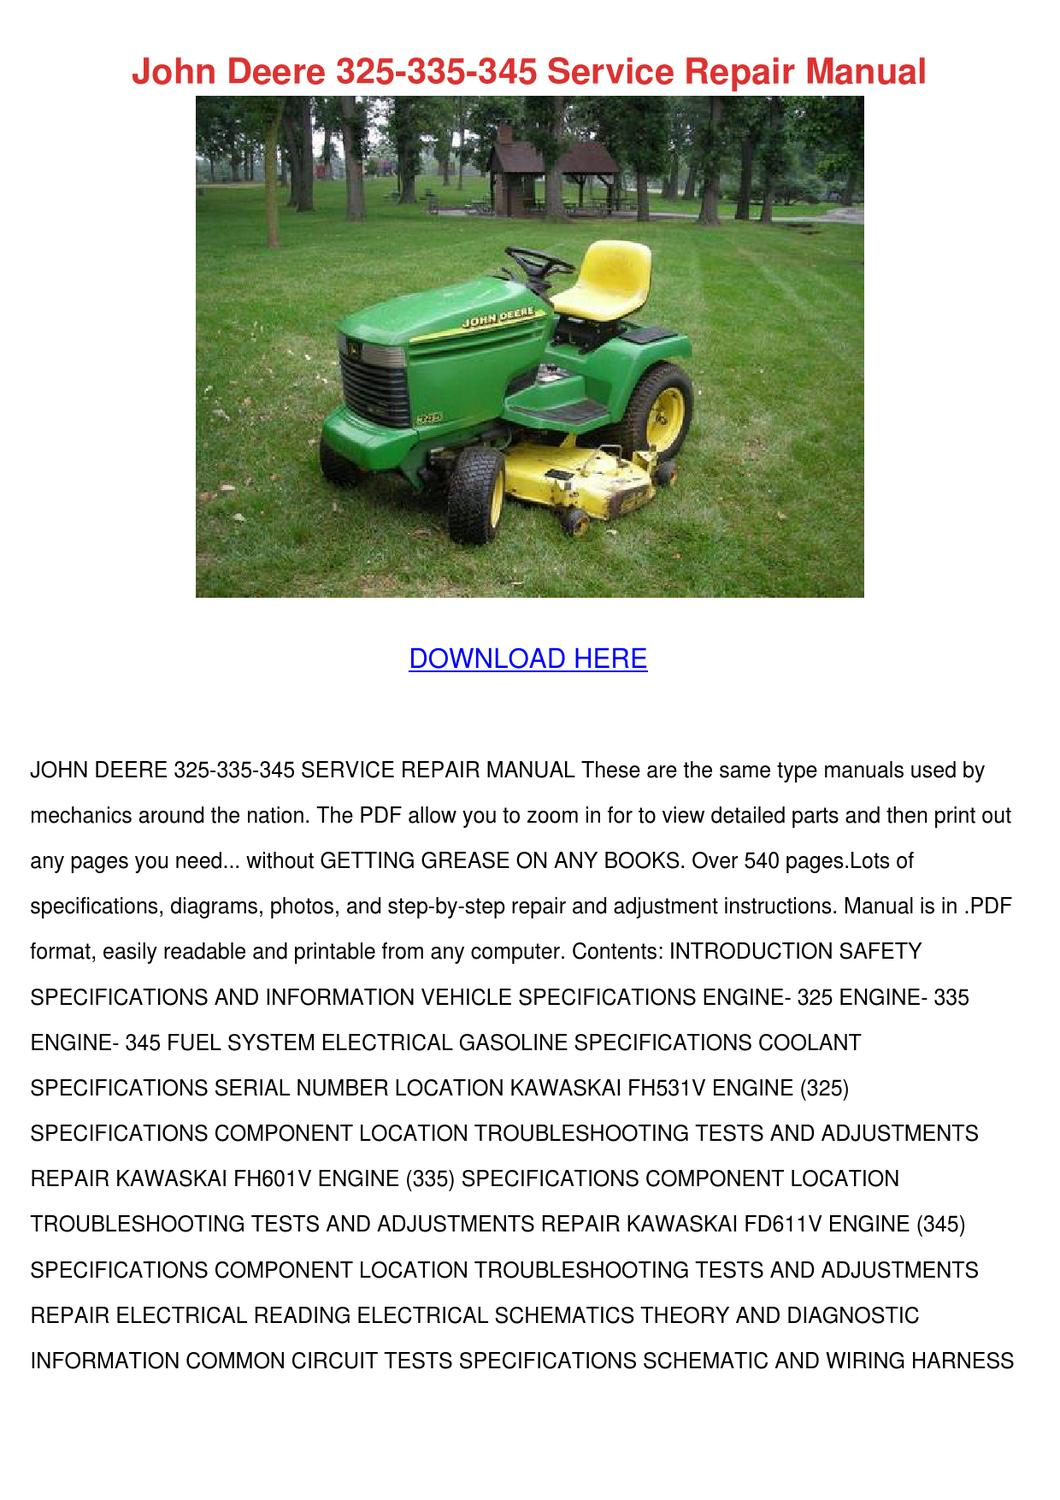 john deere 325 335 345 service repair manual by kari mabey issuu